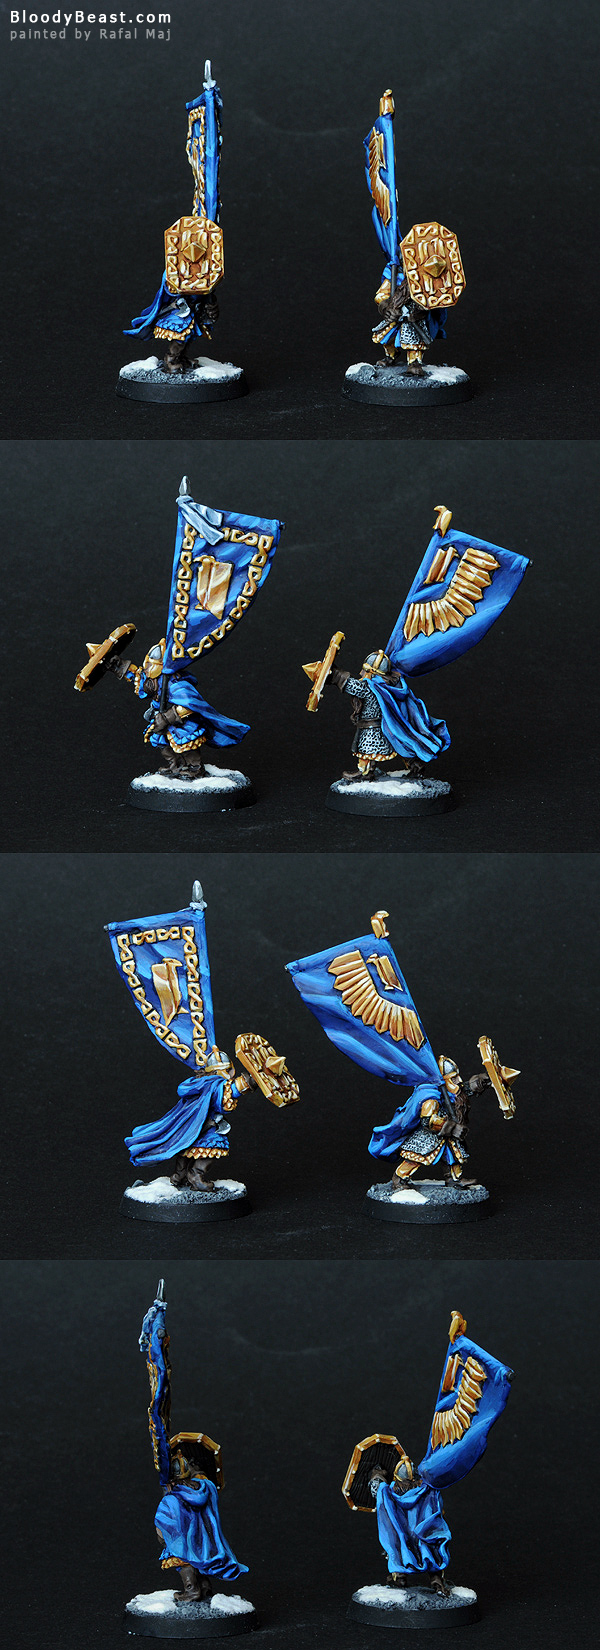 King's Champion Heralds painted by Rafal Maj (BloodyBeast.com)